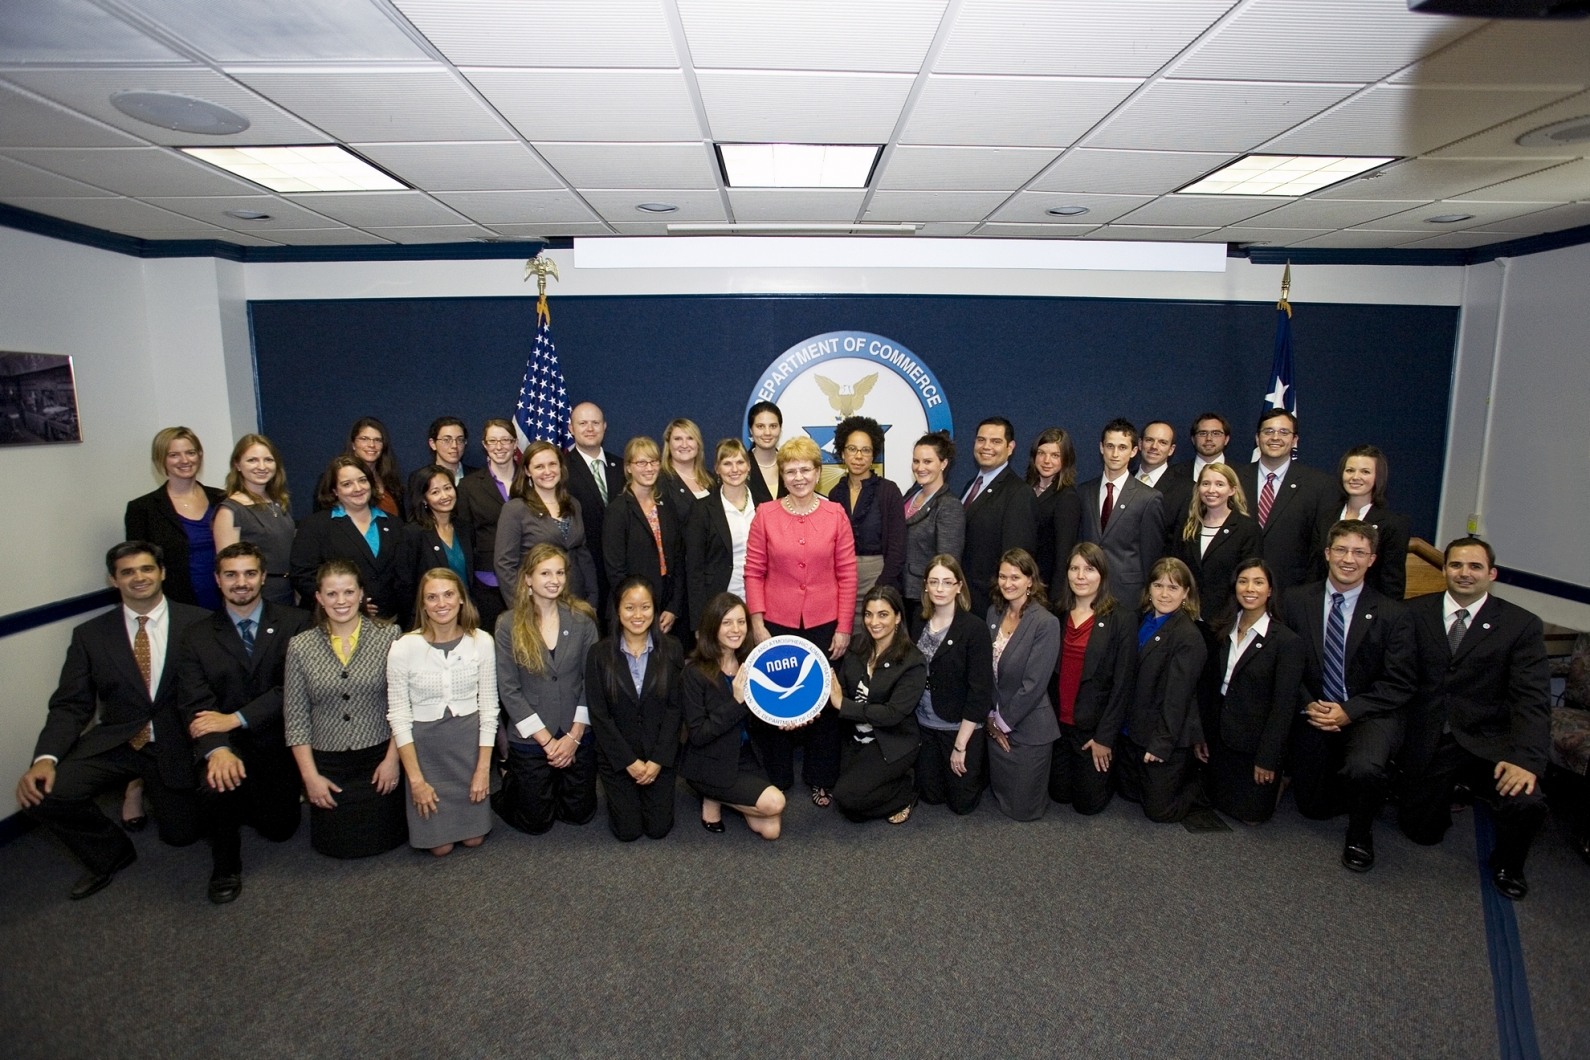 A former class of Knauss fellows pose for a photo during their one-year fellowship in Washington, D.C.